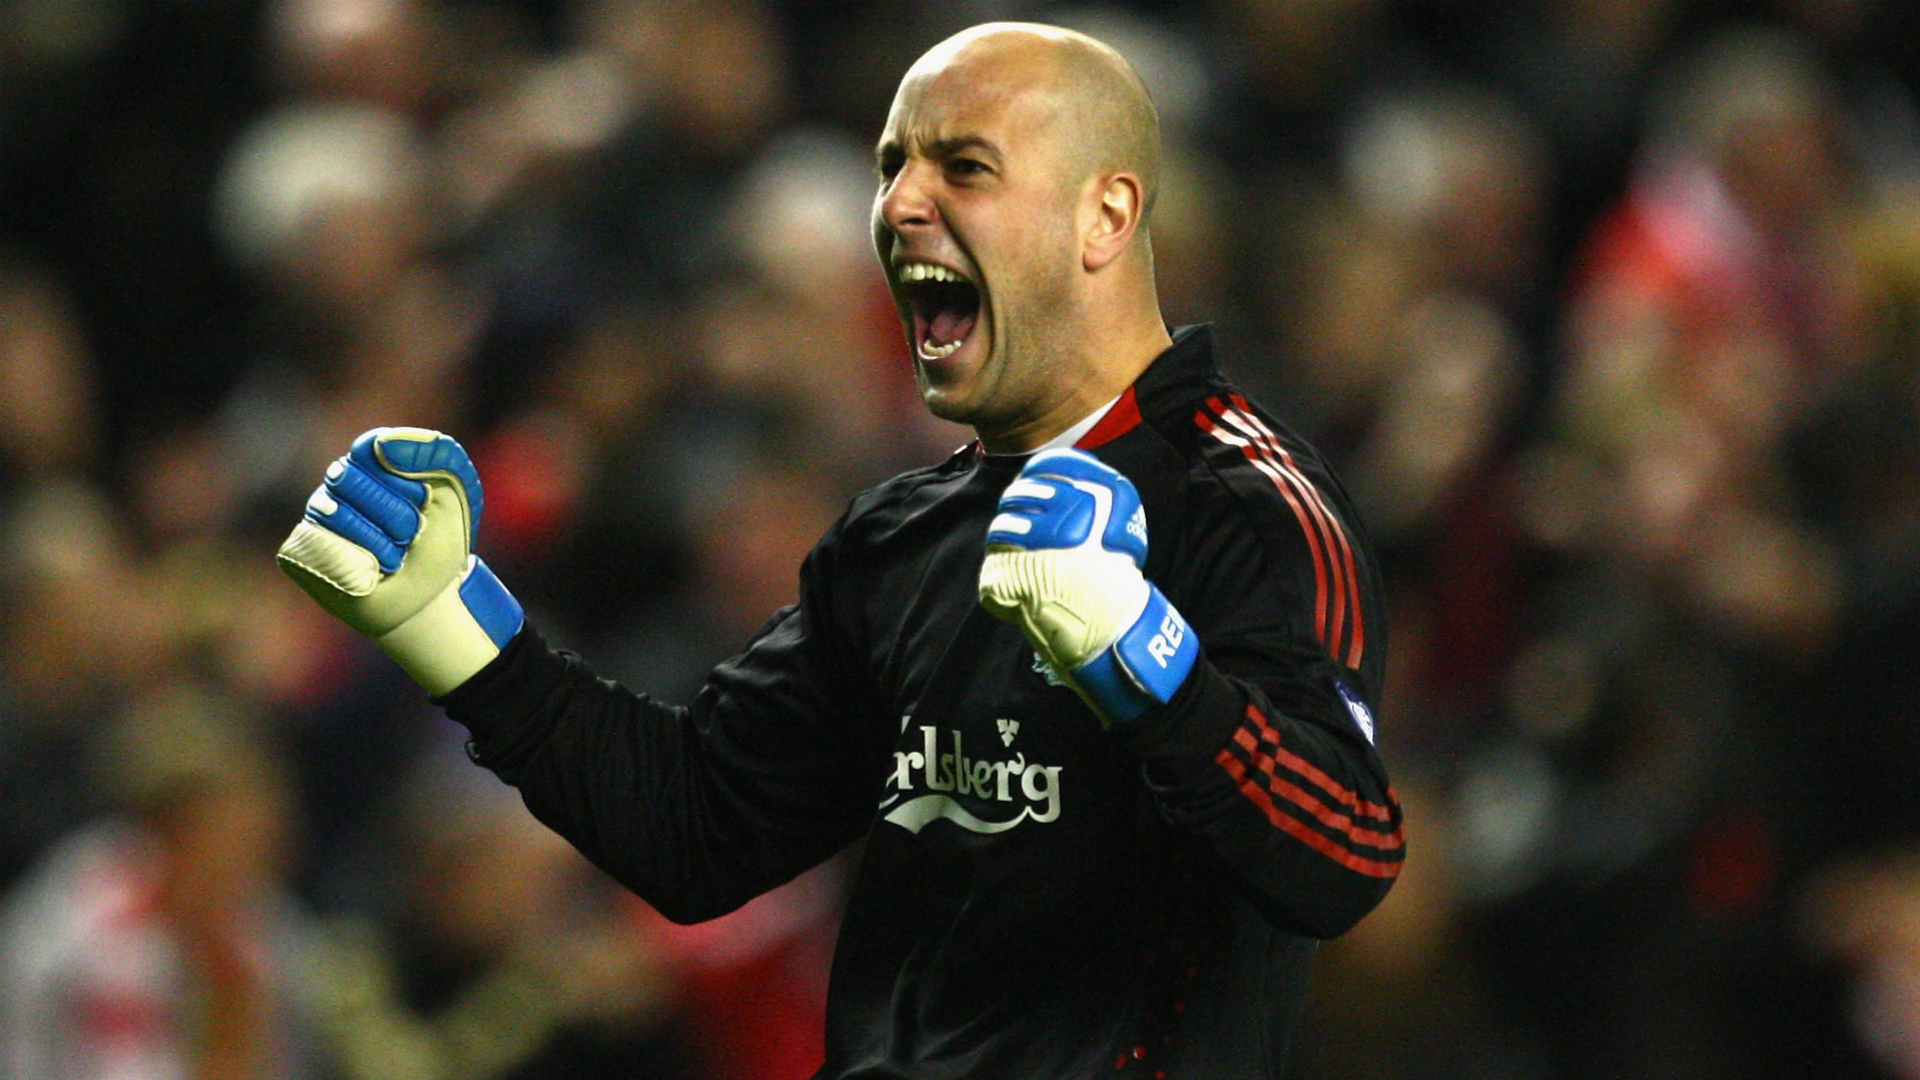 Football has been 'unfair' on Man City – but 'justice done' for Champions League finalists Liverpool, says Pepe Reina